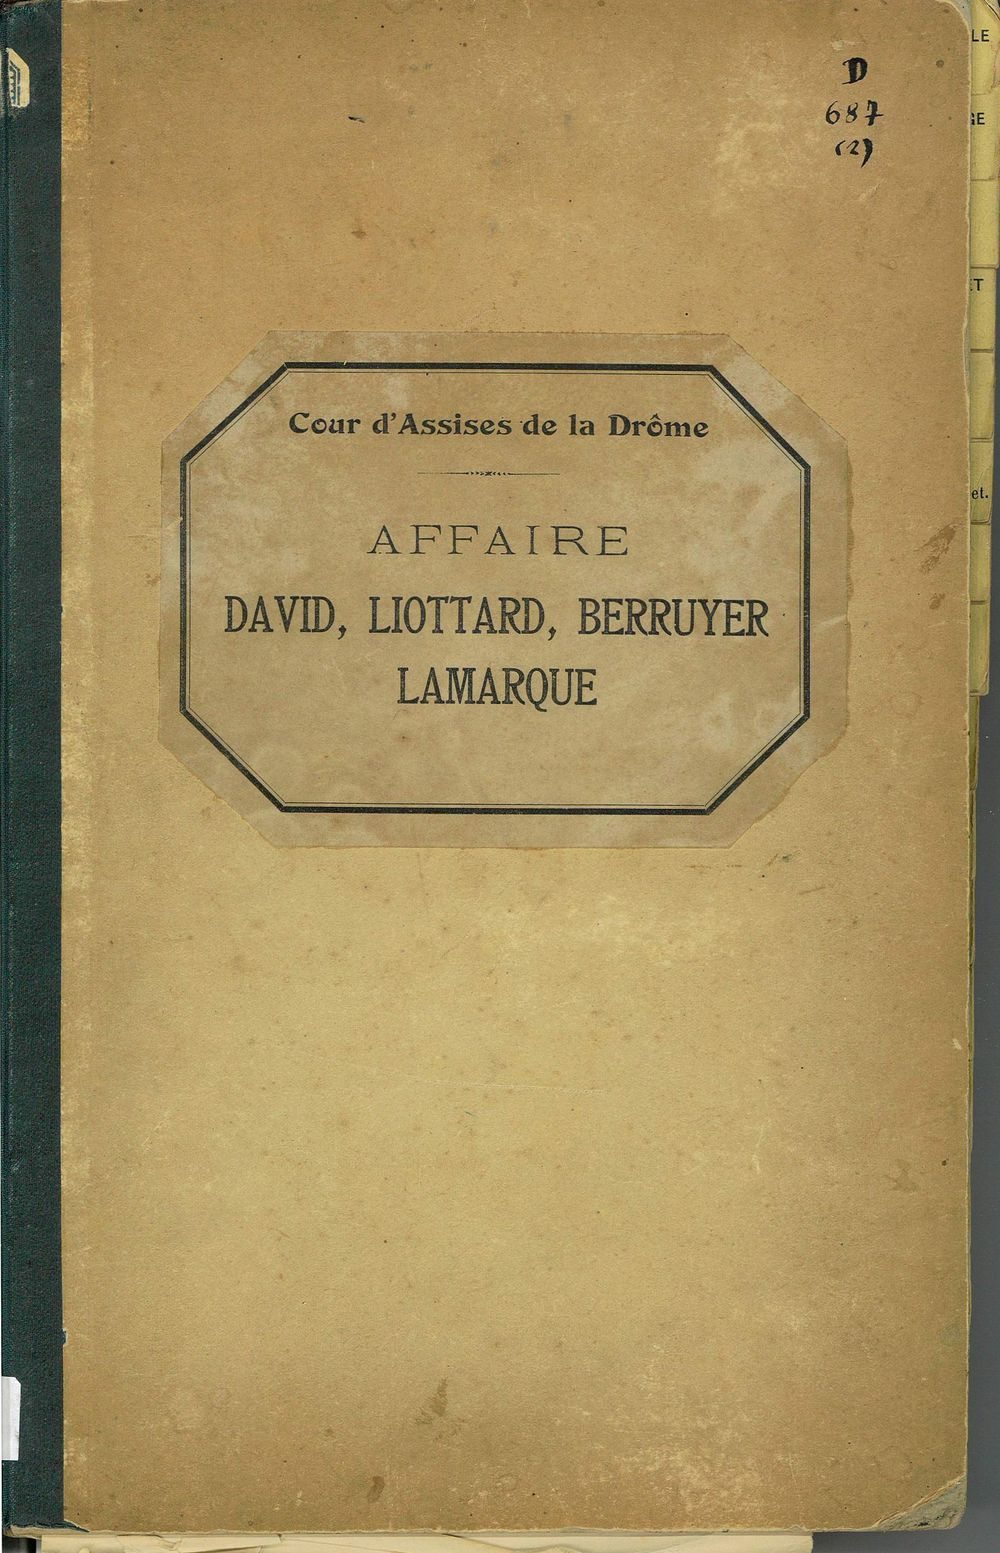 Affaire David, Liottard, Berruyer, Lamarque